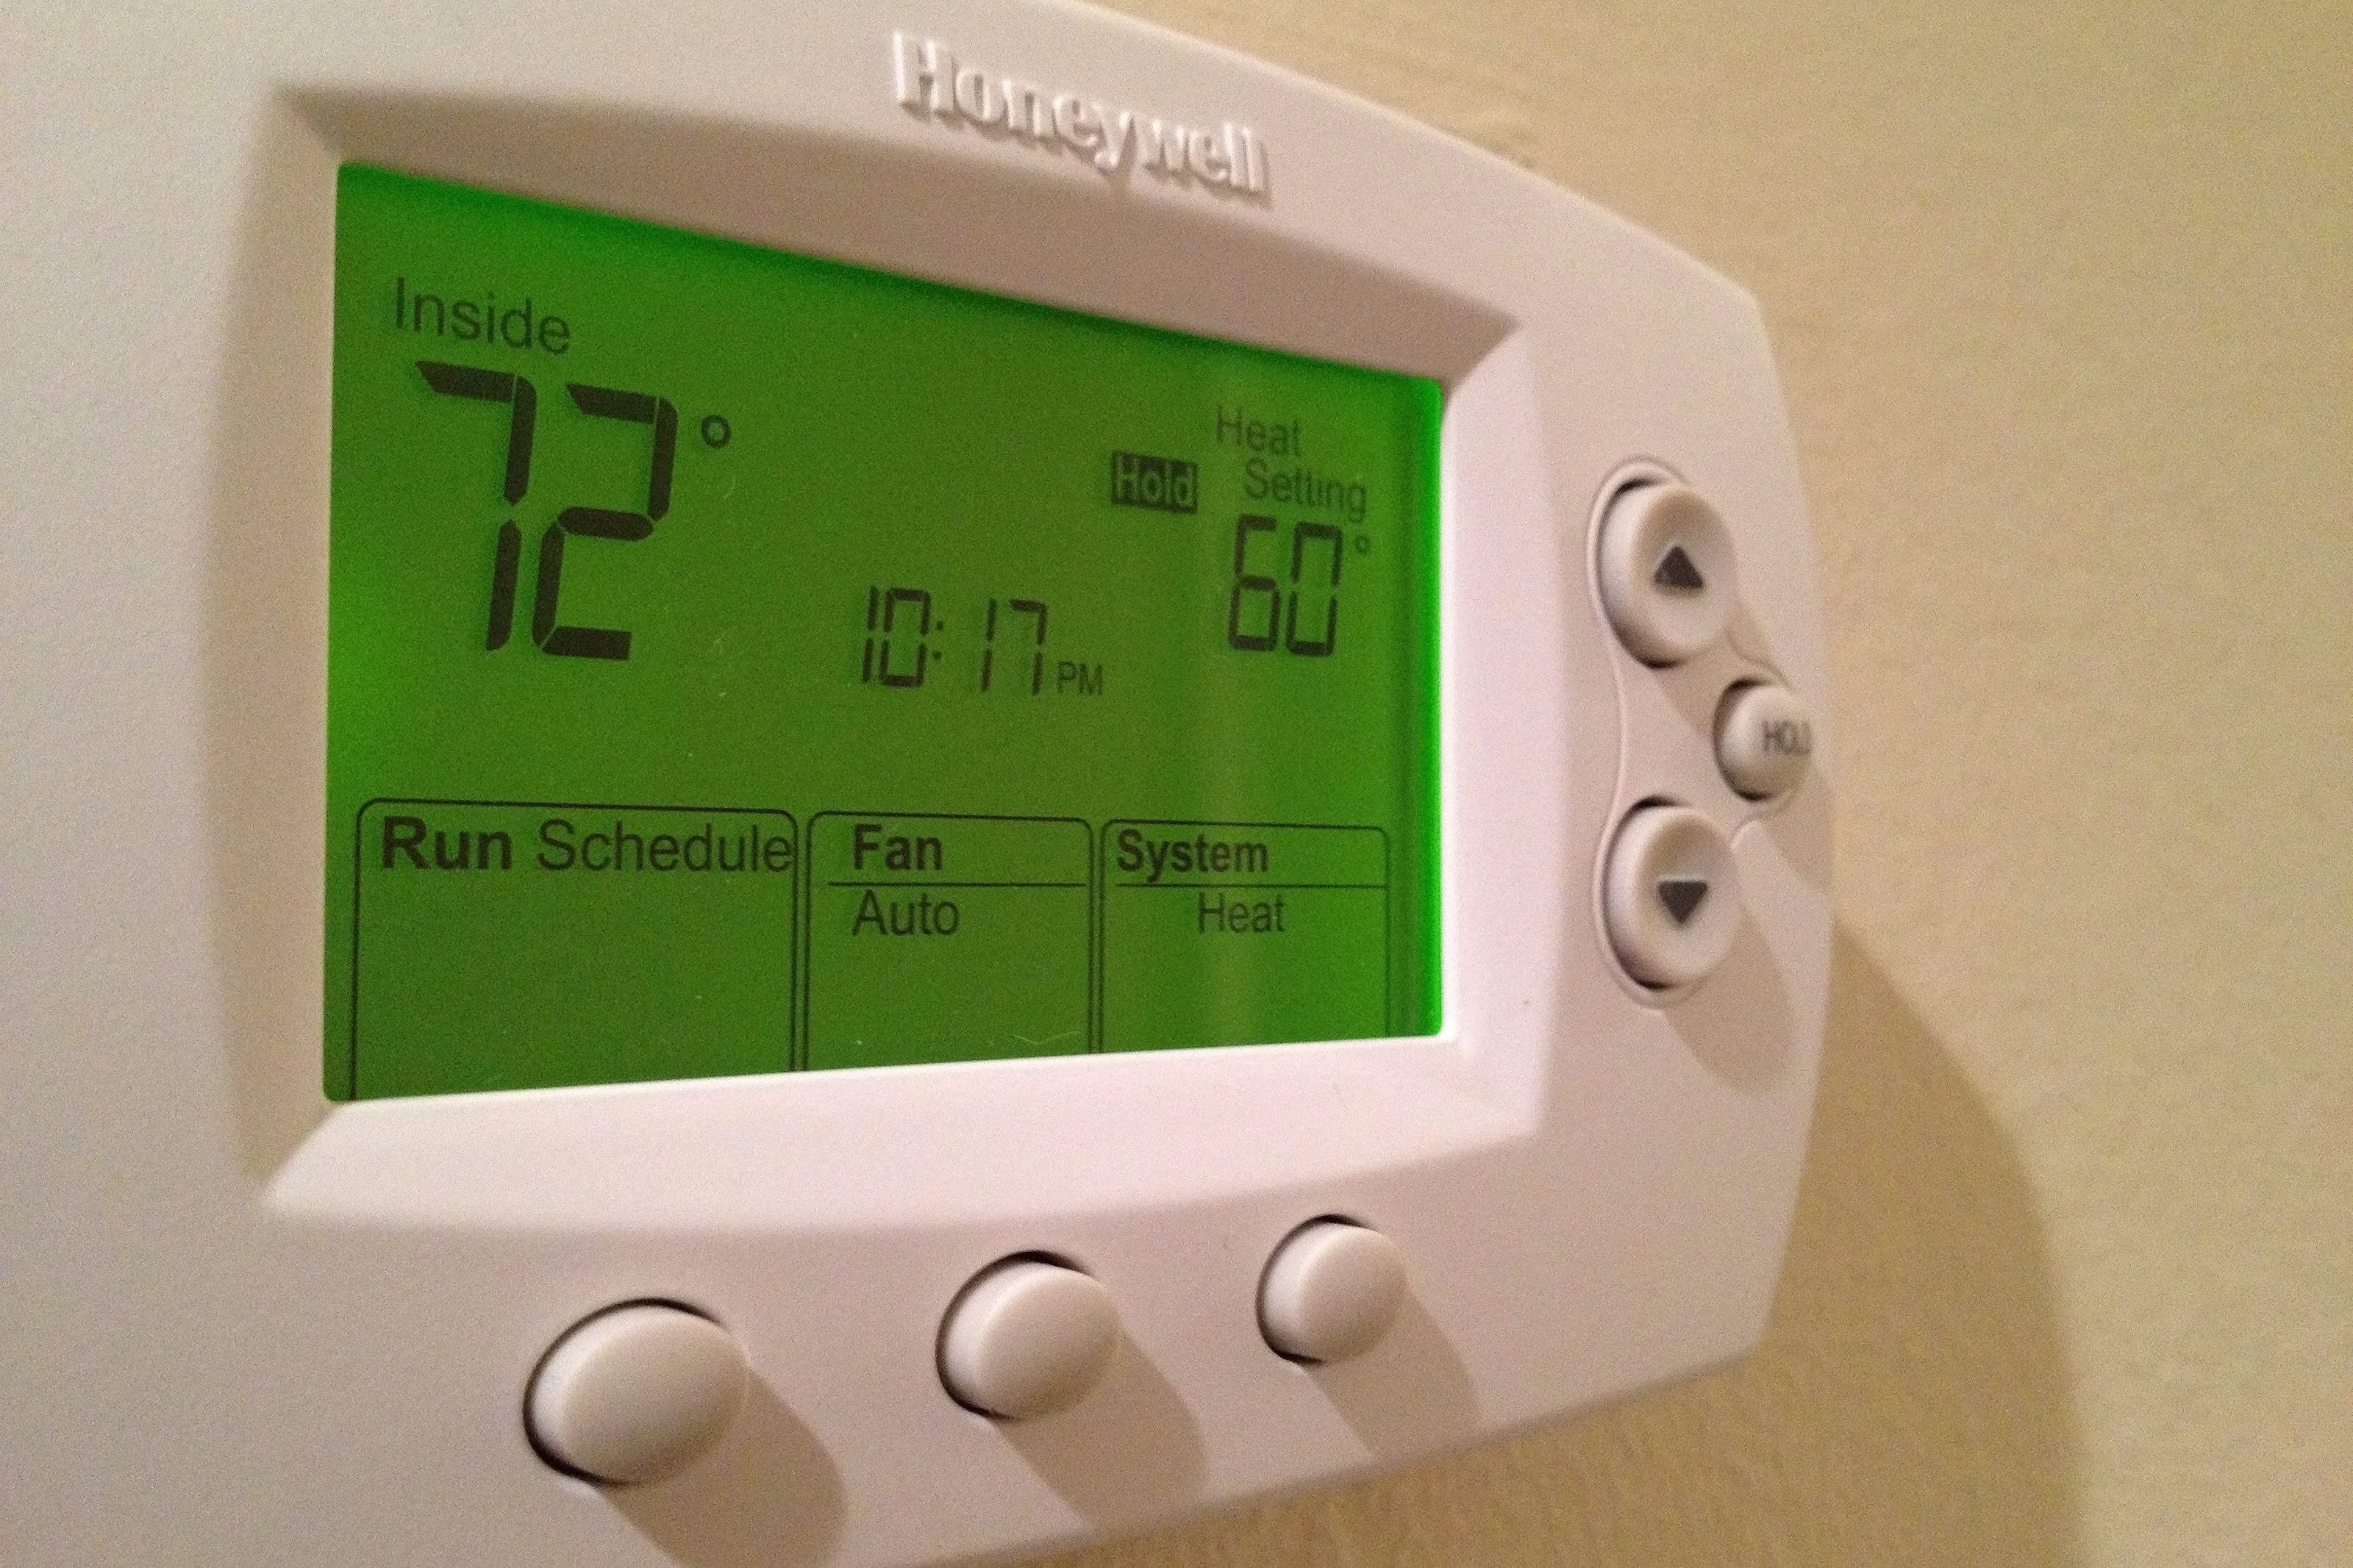 Honeywell Programmable Thermostat Programmable Thermostat How To Use Set For Every Season